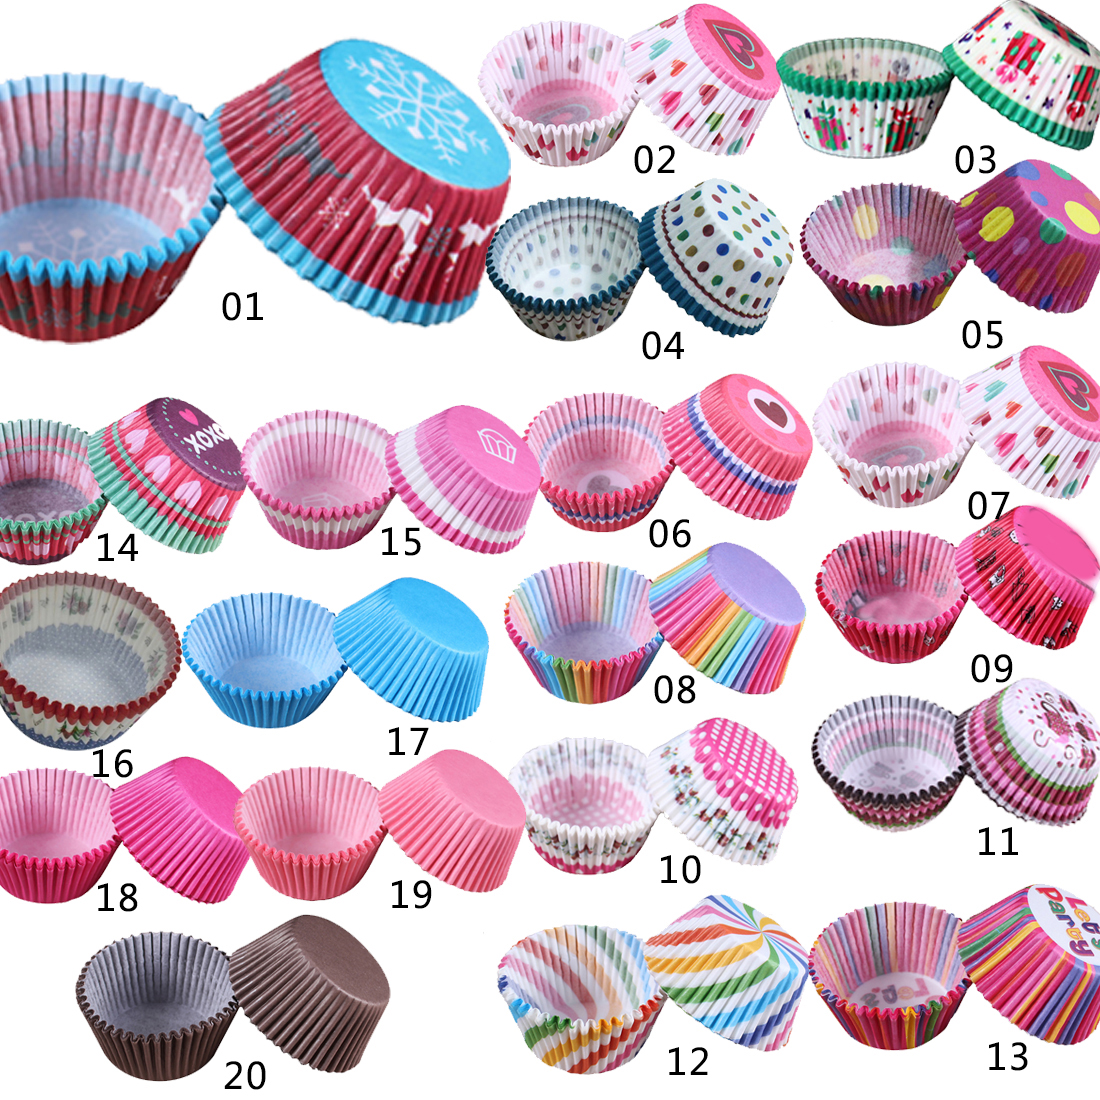 Great 100 pcs/lot Cooking Tools Grease-proof Paper Cup Cake Liners Baking Cup Muffin Kit ...